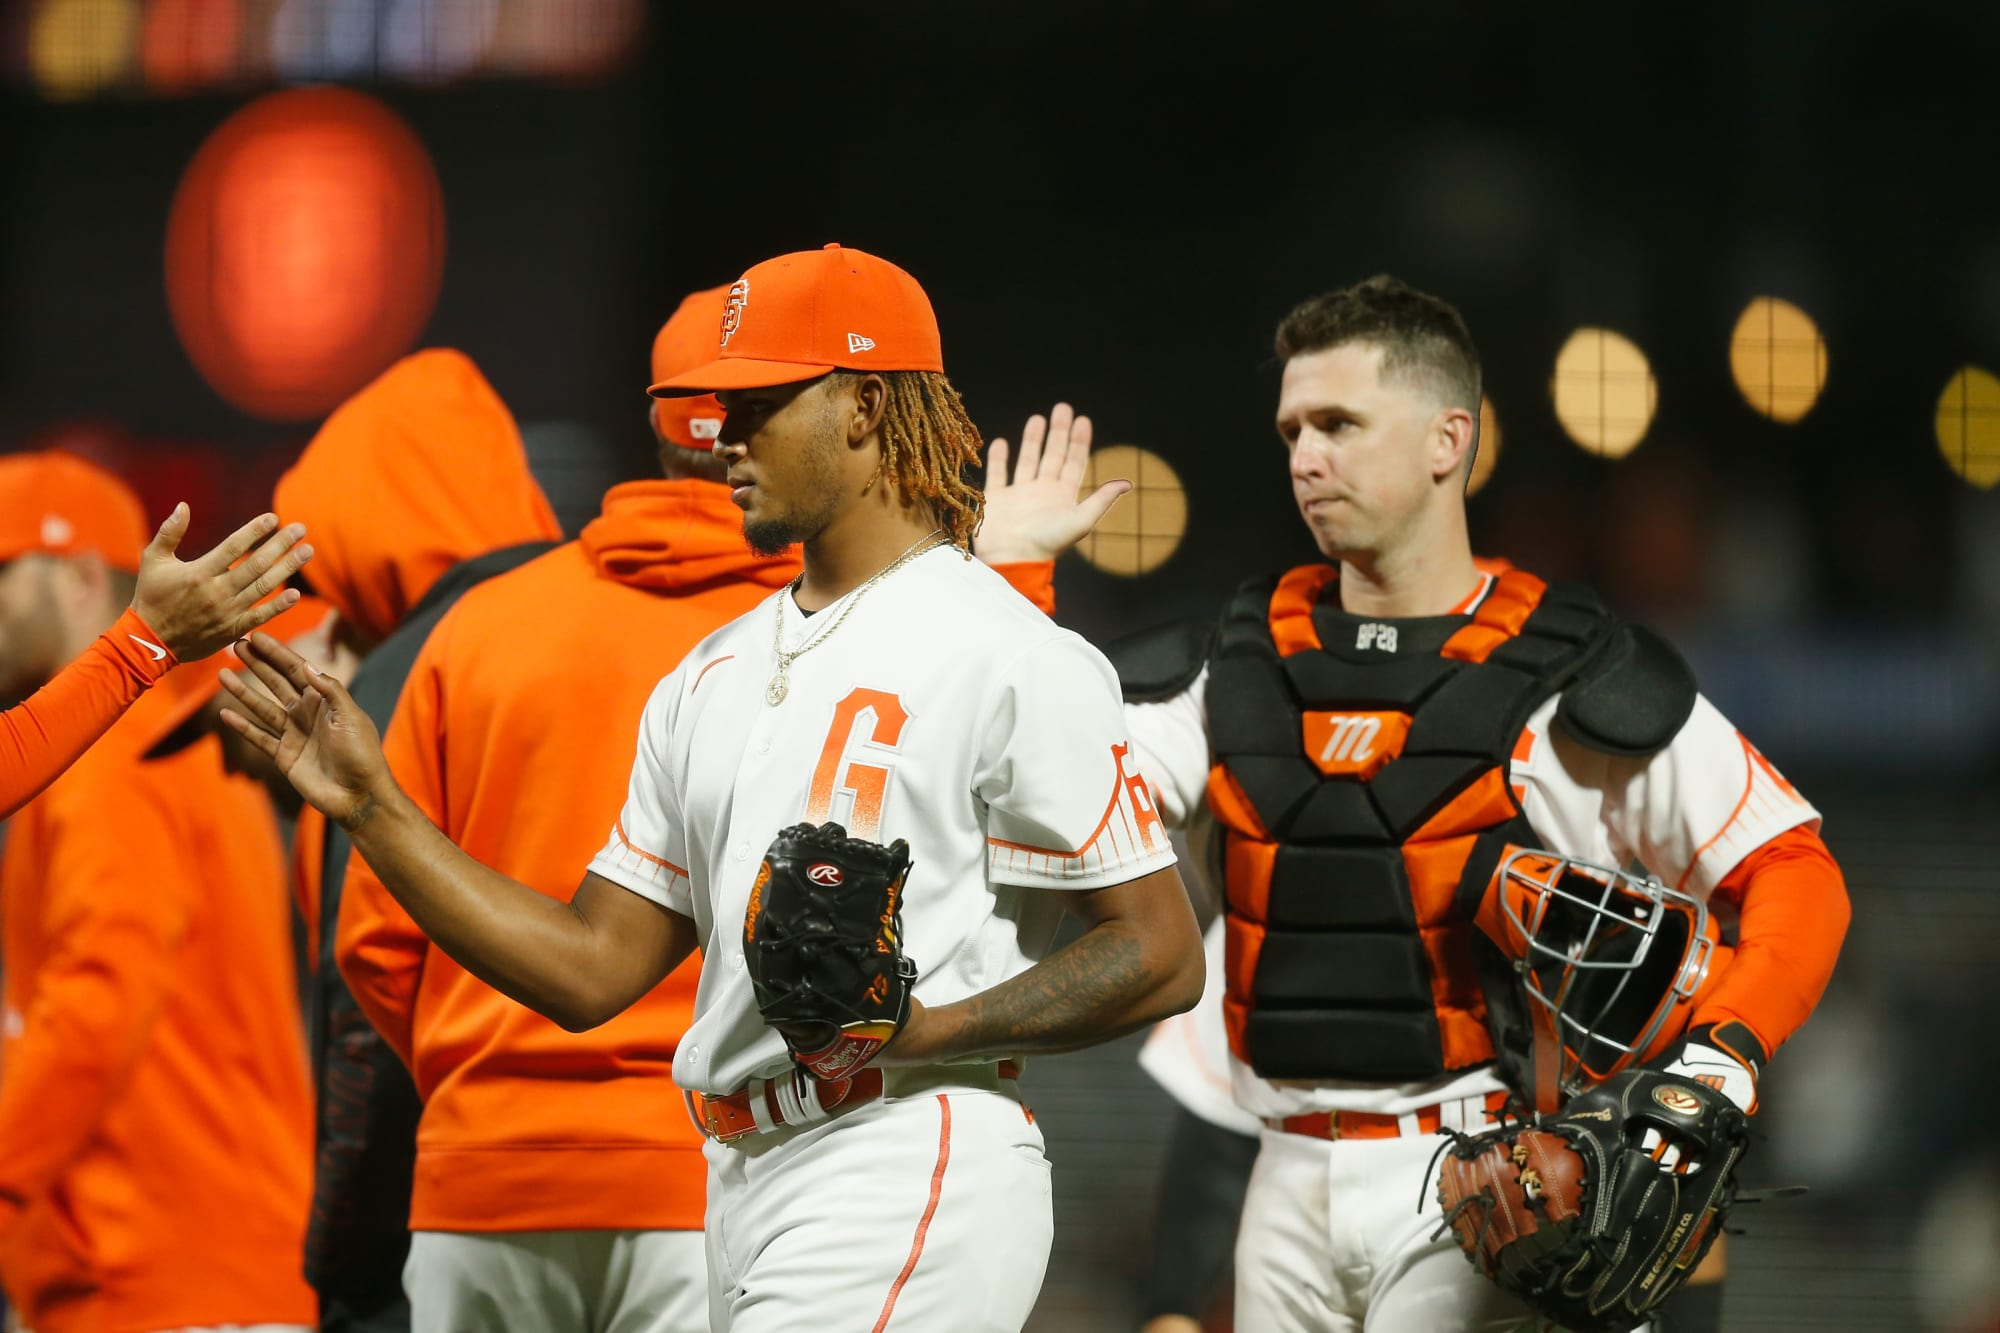 SF Giants: Hard-throwing reliever could be key in playoffs